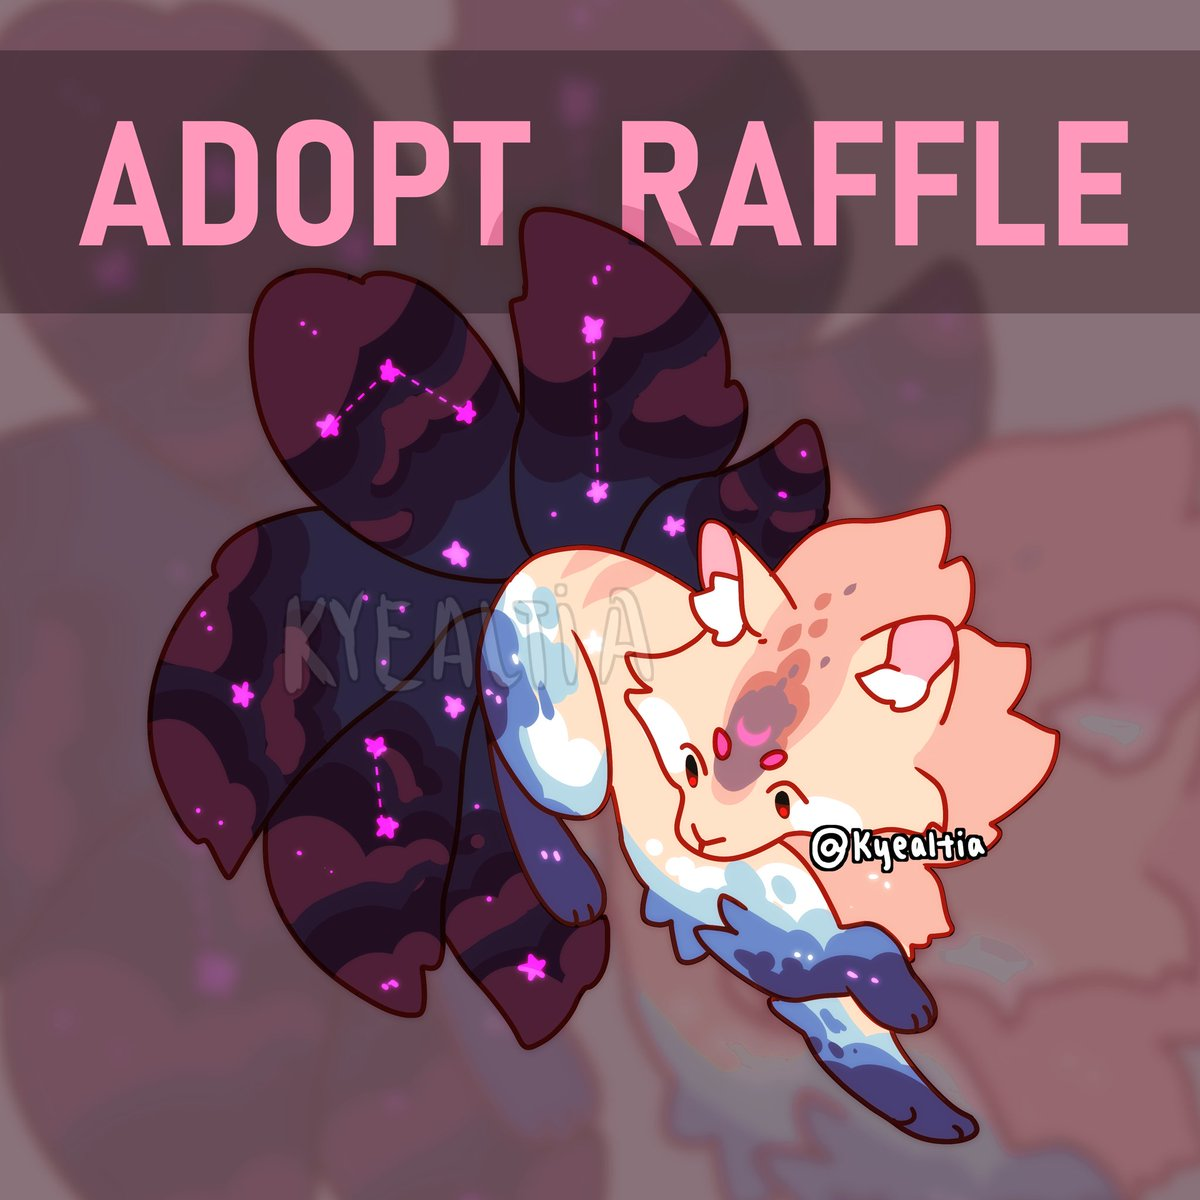 It's raffle time!!  Winner receives adopt ownership + JPEG file!  Rules: - follow me - retweet this - comment your favorite species for adopts!  Ends 4/30/20 #adoptgiveaway #adoptraffle #adoptable #adoptables #adopts #freeart #freeadopt #raffle #giveawaypic.twitter.com/PHJjRJDOk8